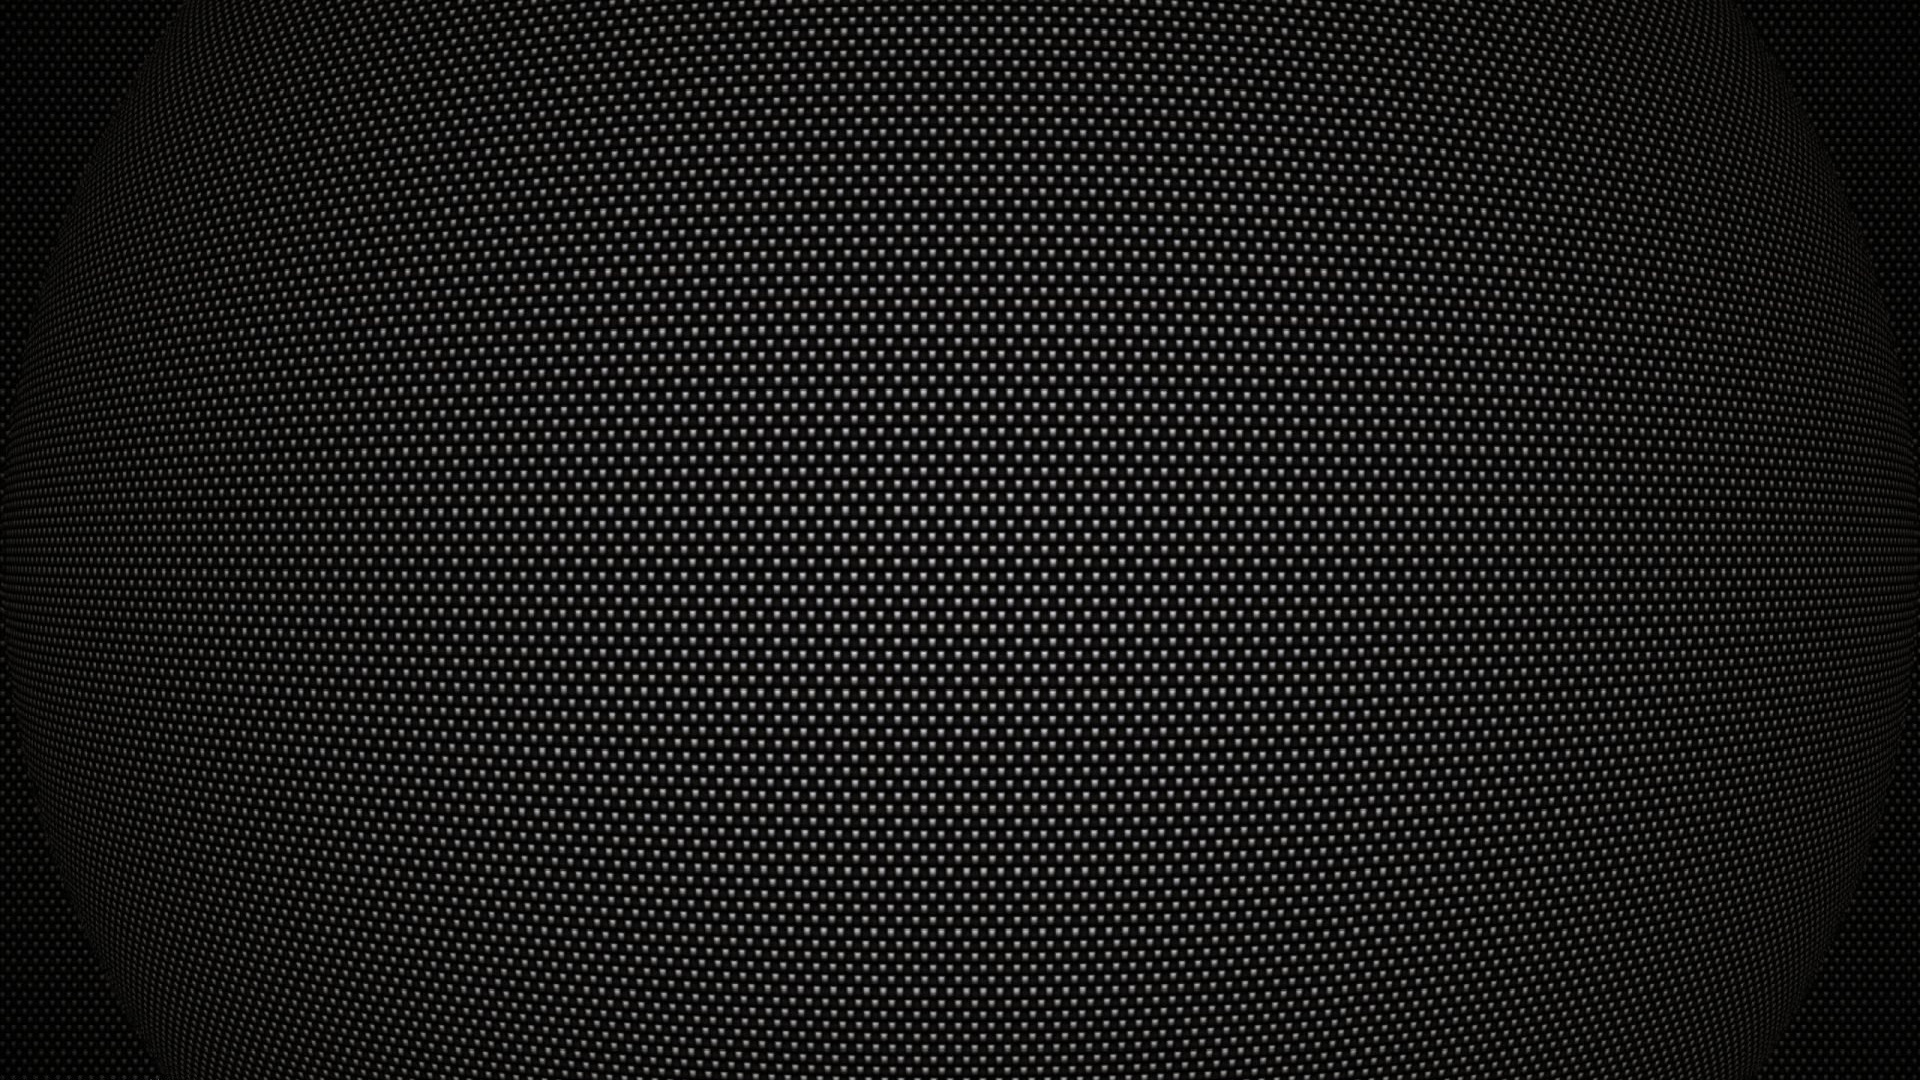 Plain black wallpapers hd wallpapersafari for Black 3d wallpaper